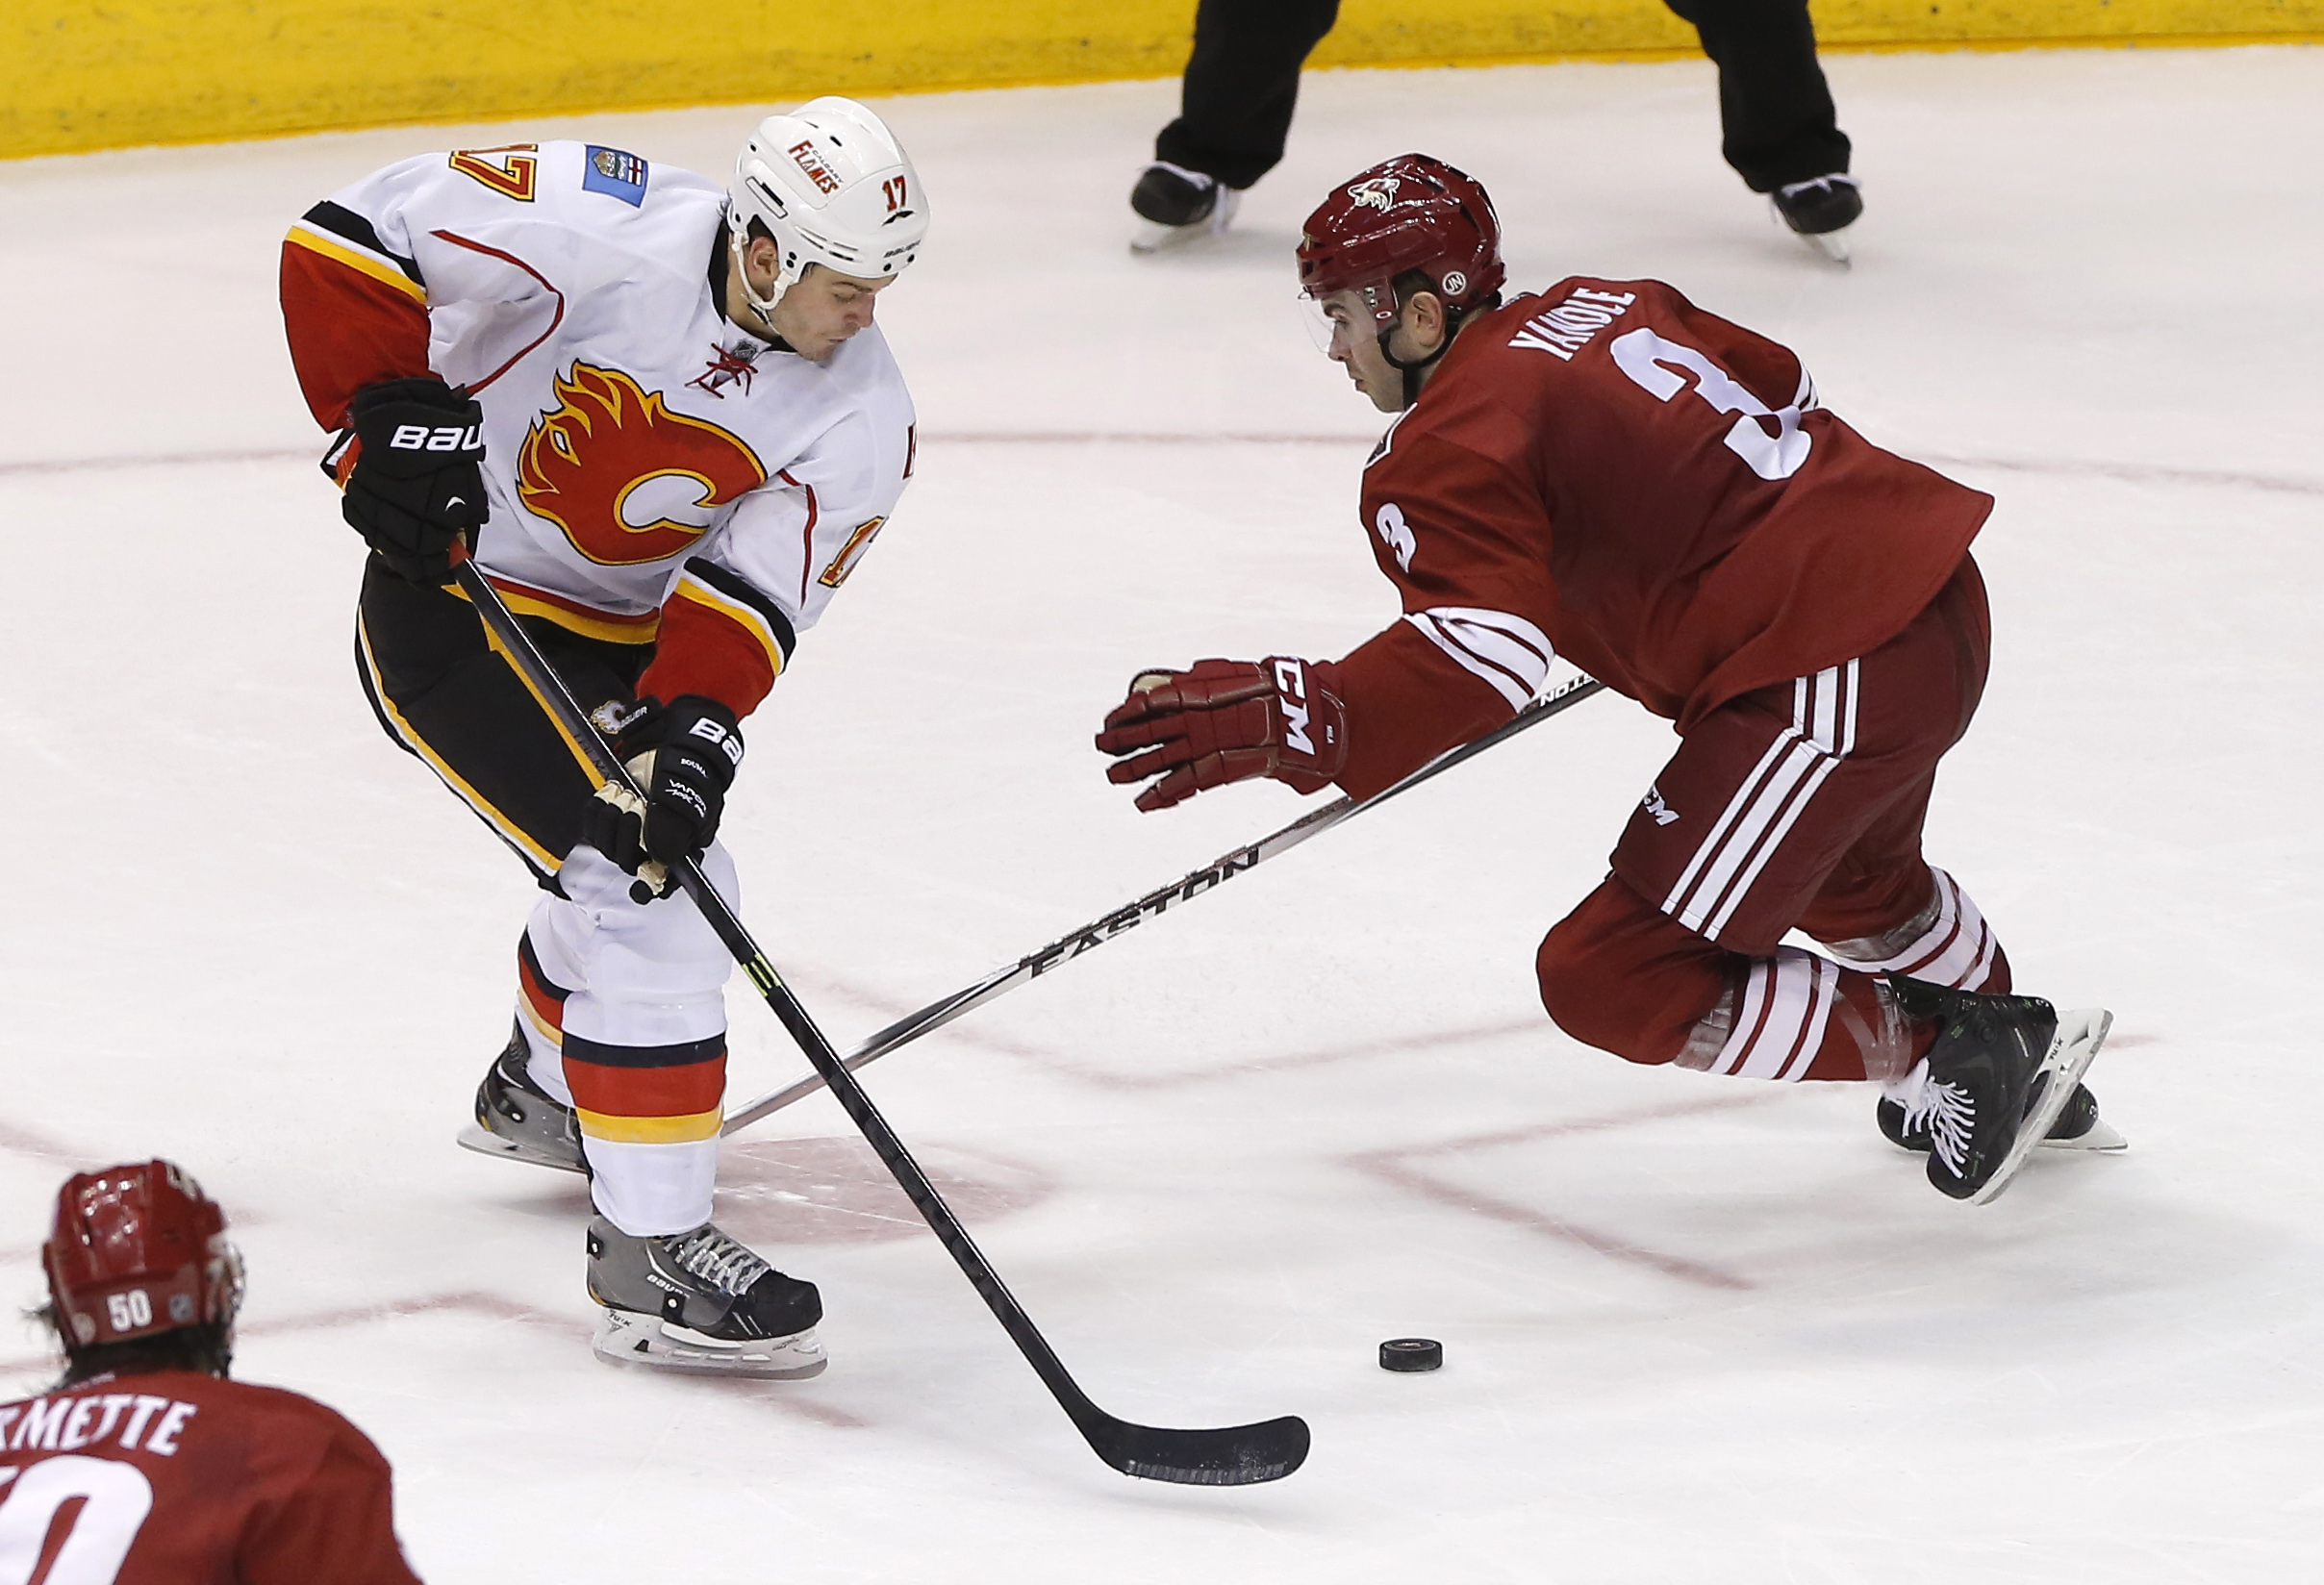 Calgary Flames' Lance Bouma (17) and Phoenix Coyotes' Keith Yandle (3) battle for the puck during the second period of an NHL hockey game, Saturday, March 15, 2014, in Glendale, Ariz